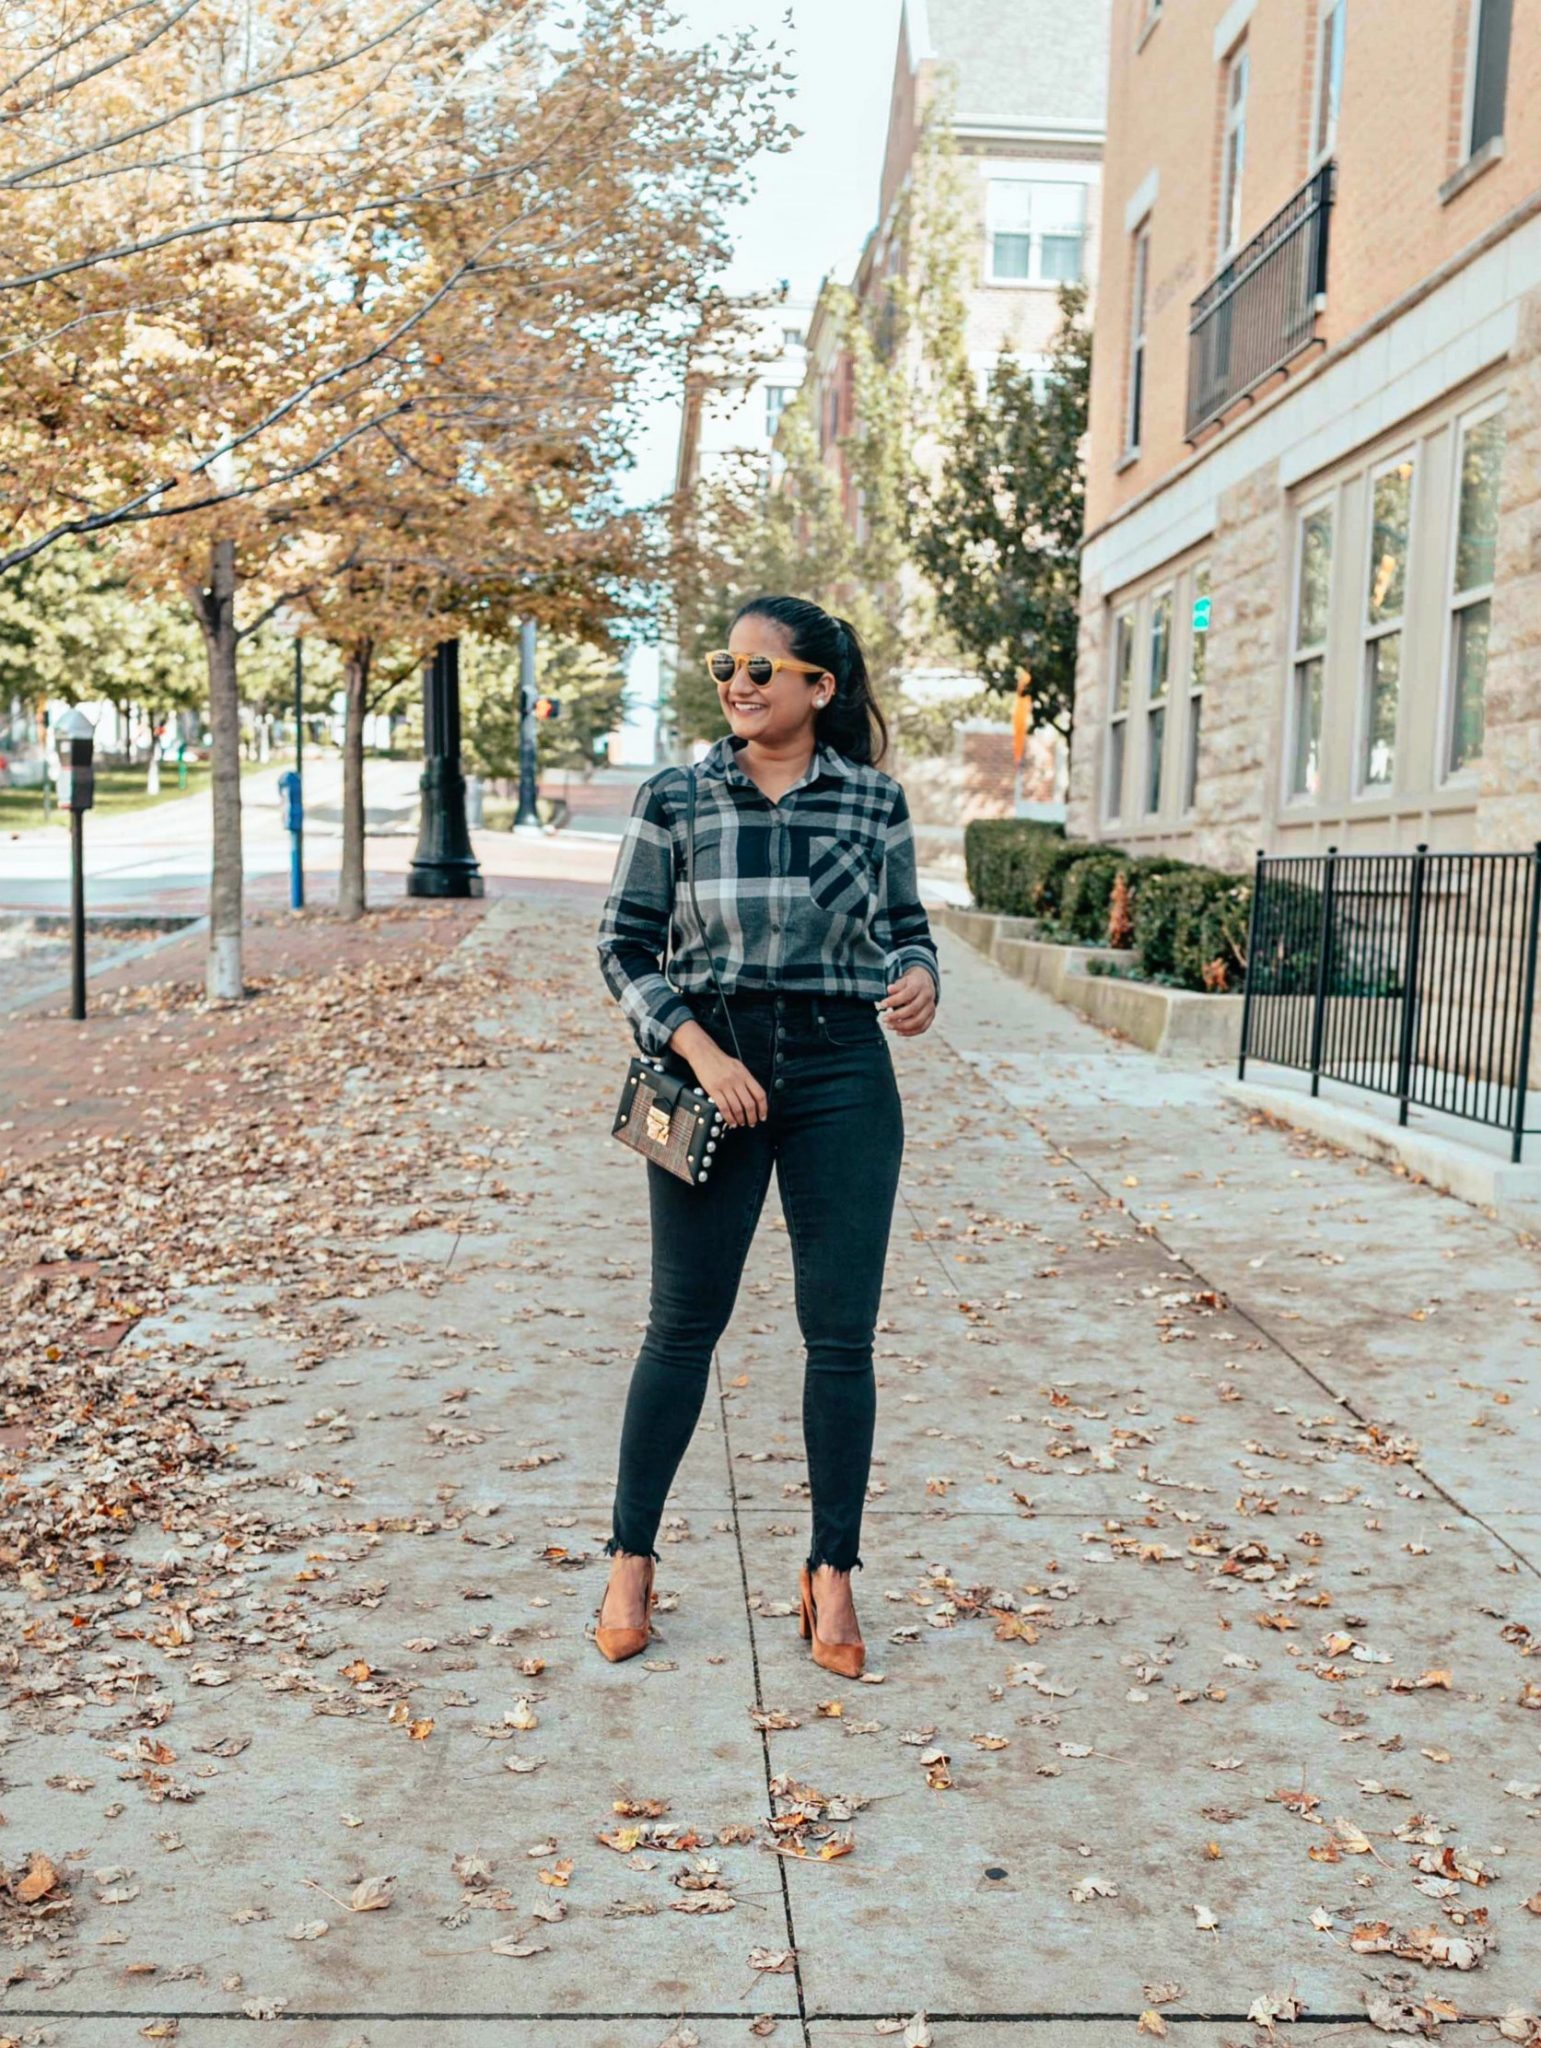 How to wear flannel shirts to work | Eddie Bauer boyfriend flannel shirt styled 4 ways, featured by top US modest fashion blog, Dreaming Loud